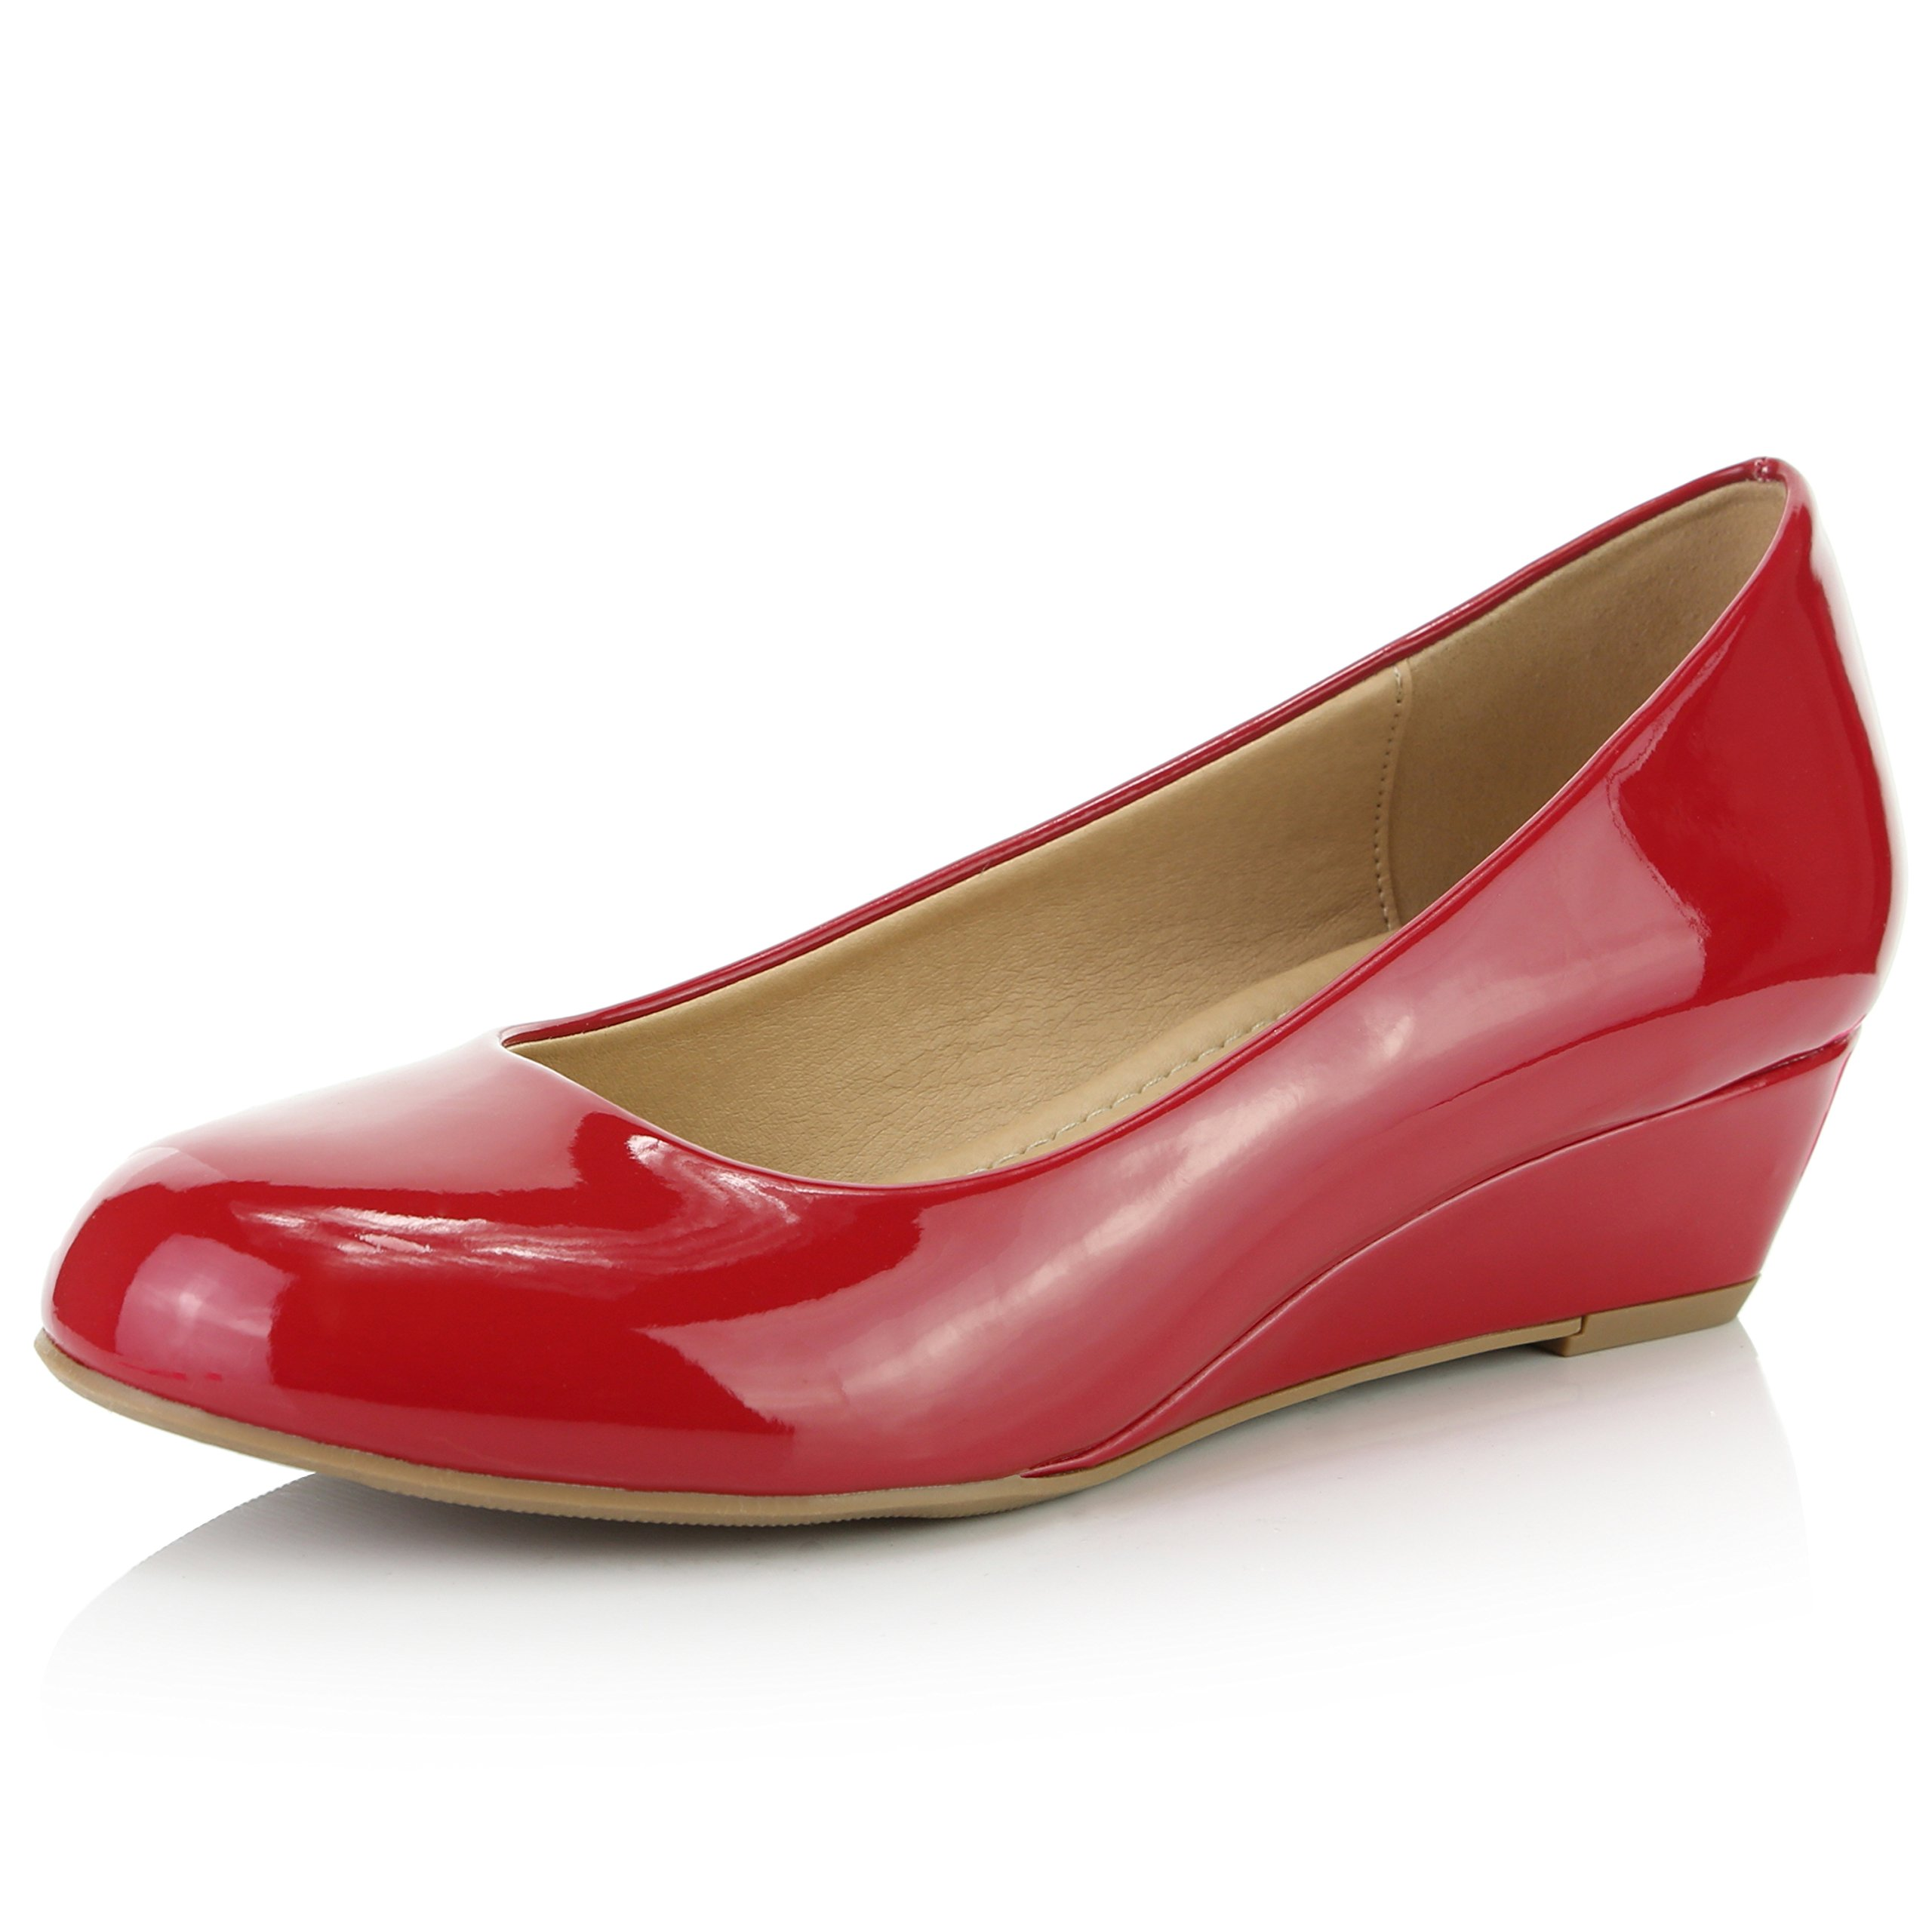 DailyShoes Women's Comfortable Fashion Low Heels Round Toe Wedge Pumps Shoes, Red Patent Leather, 6.5 B(M) US